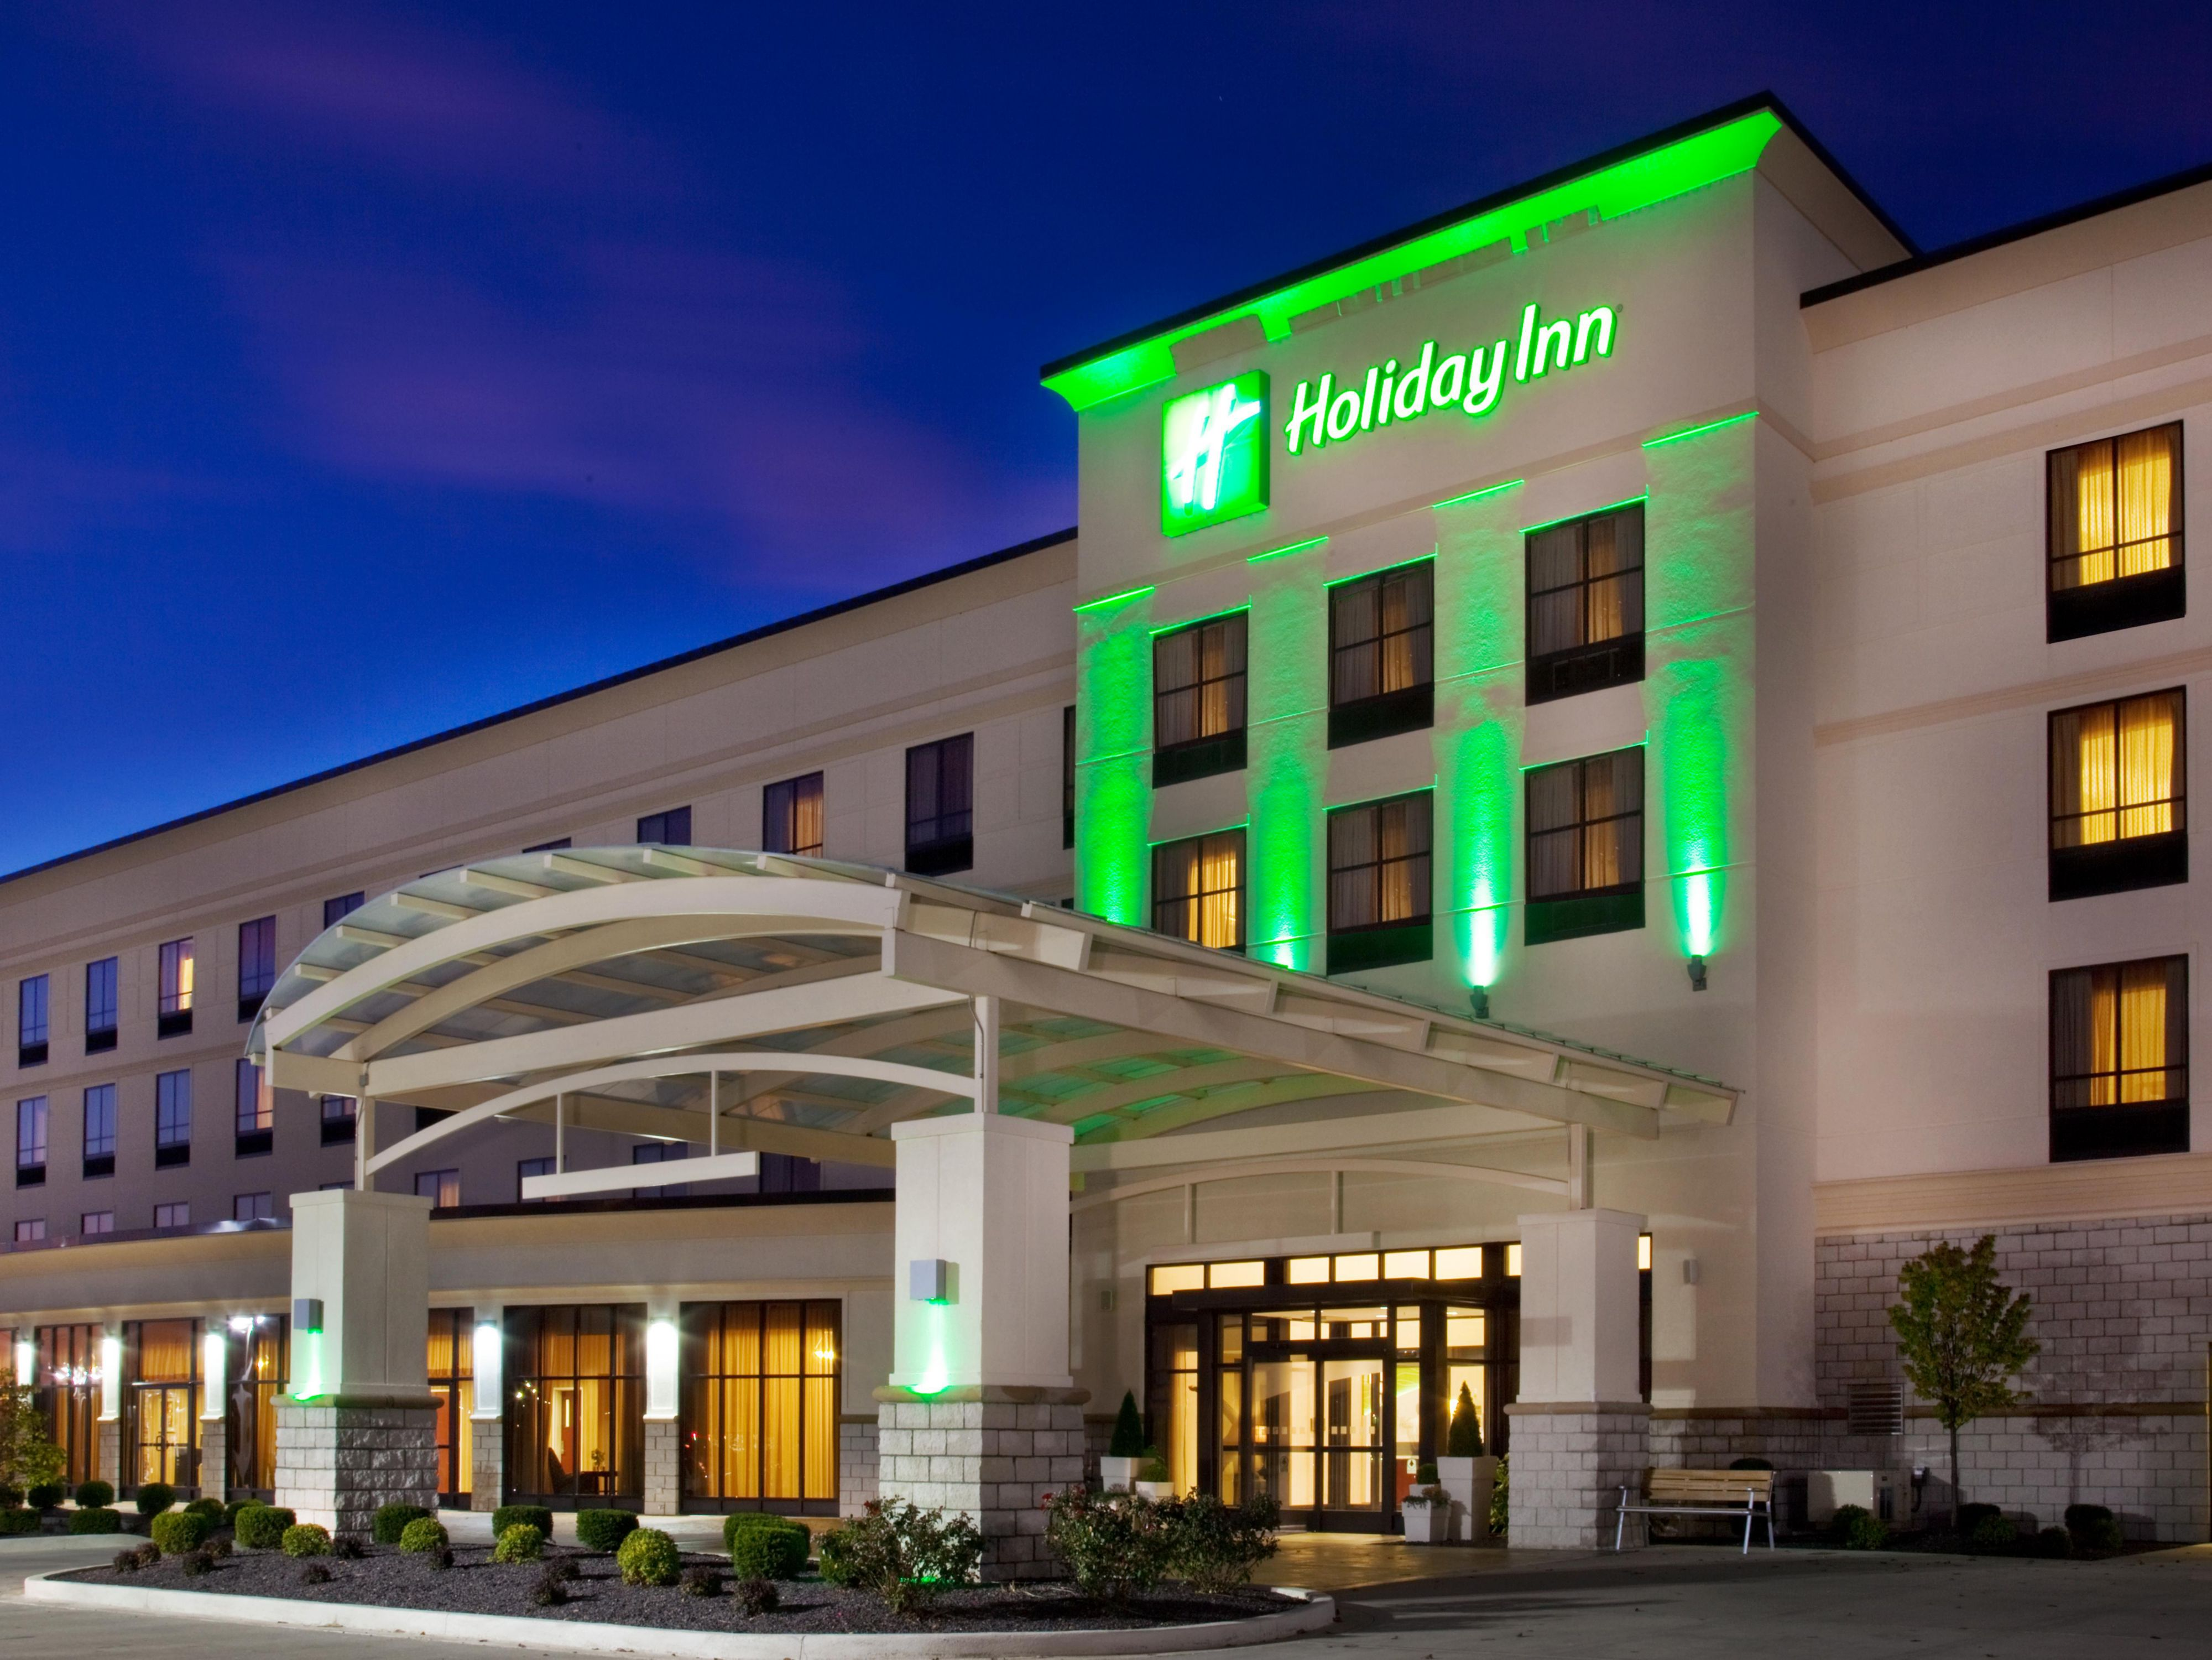 Welcome to Holiday Inn Quincy IL